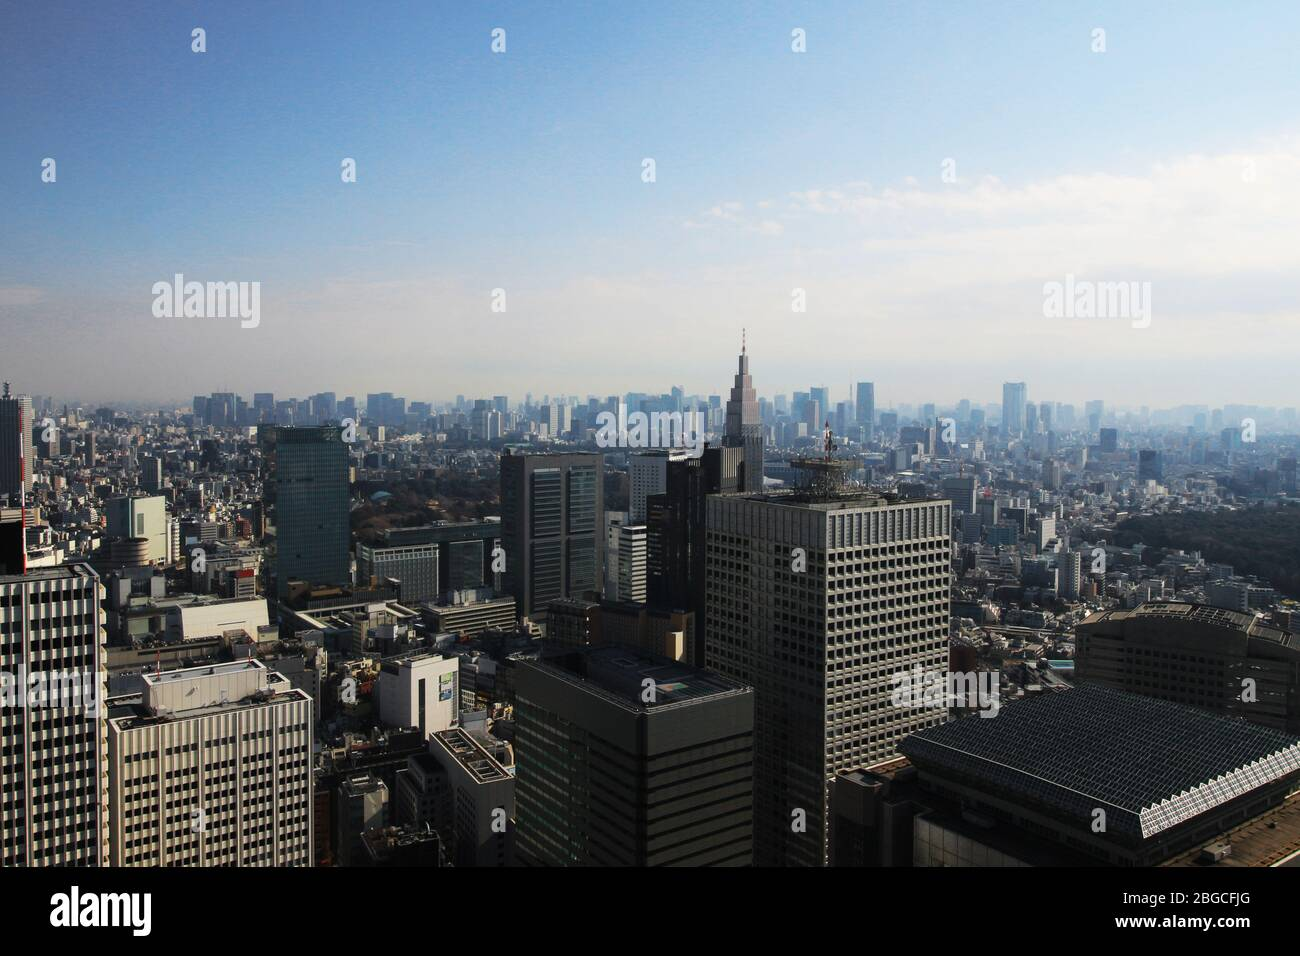 Scenery of skyscrapers in central Tokyo as seen from the Tokyo Metropolitan Government Observatory Stock Photo